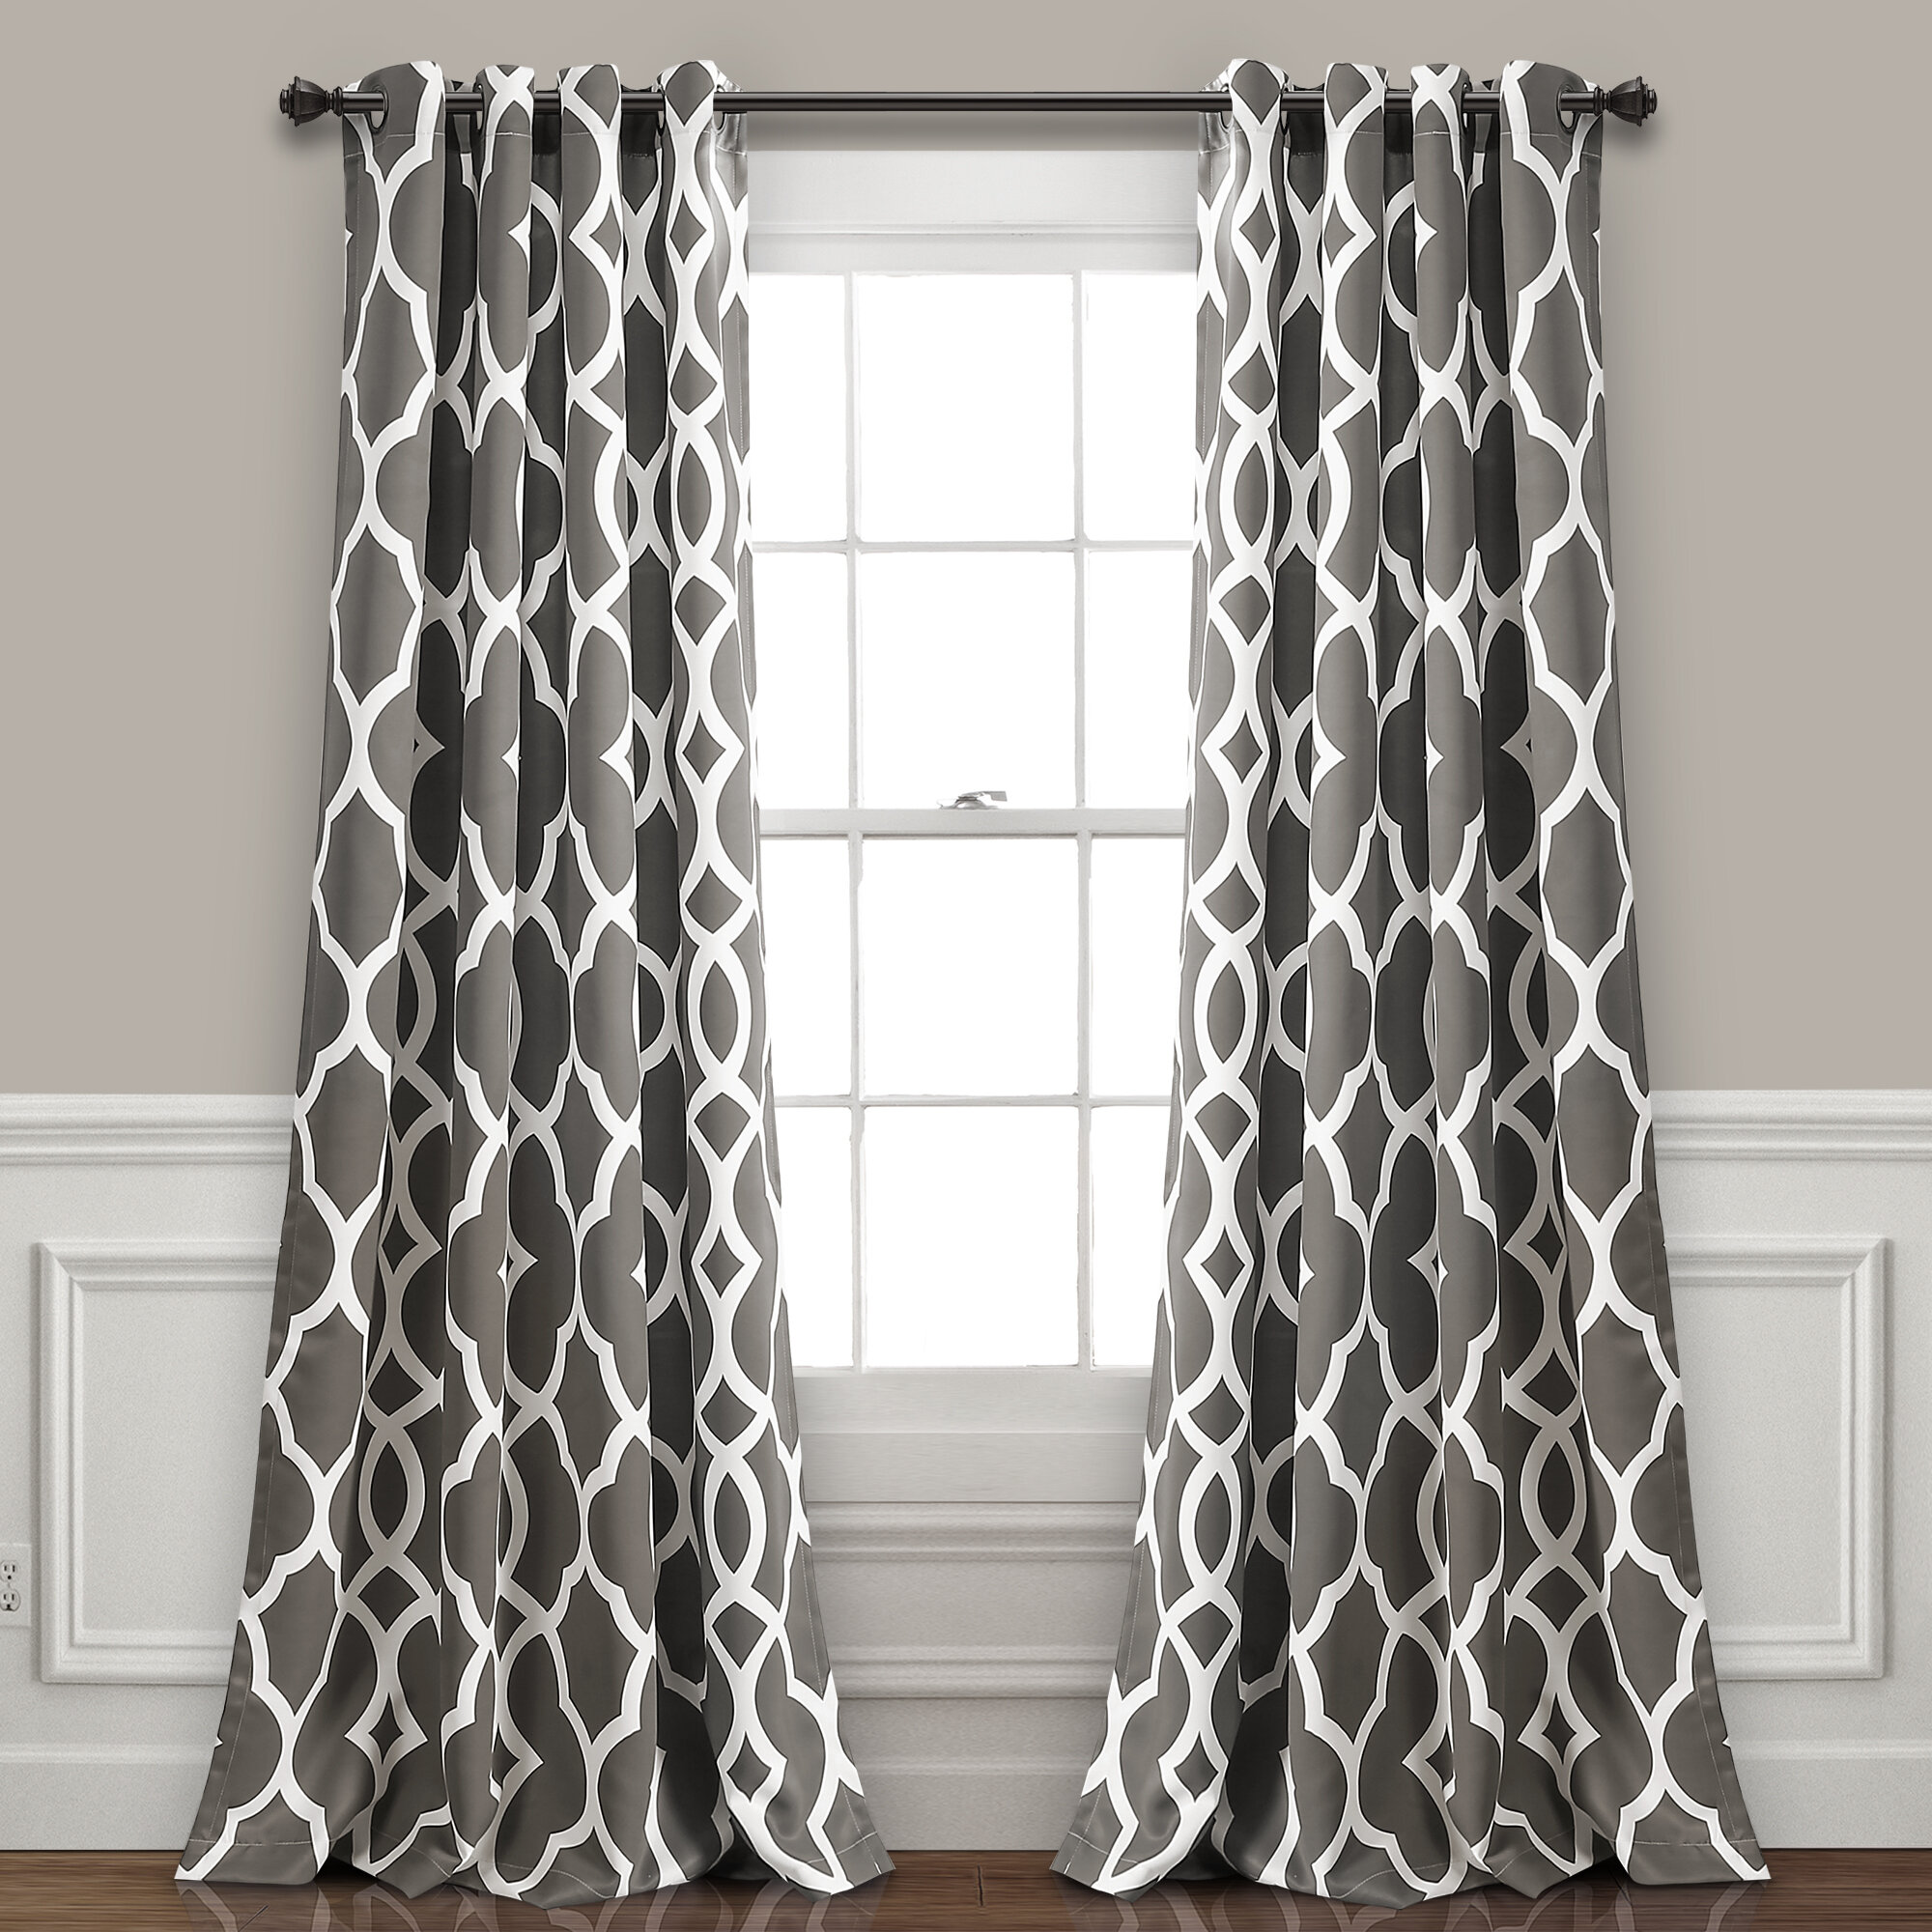 These Room Darkening Curtains Feature A Pattern Of Teardrop Shaped Leaves Between Two Horizontal Stripes Geometric Shapes Available In Three Color